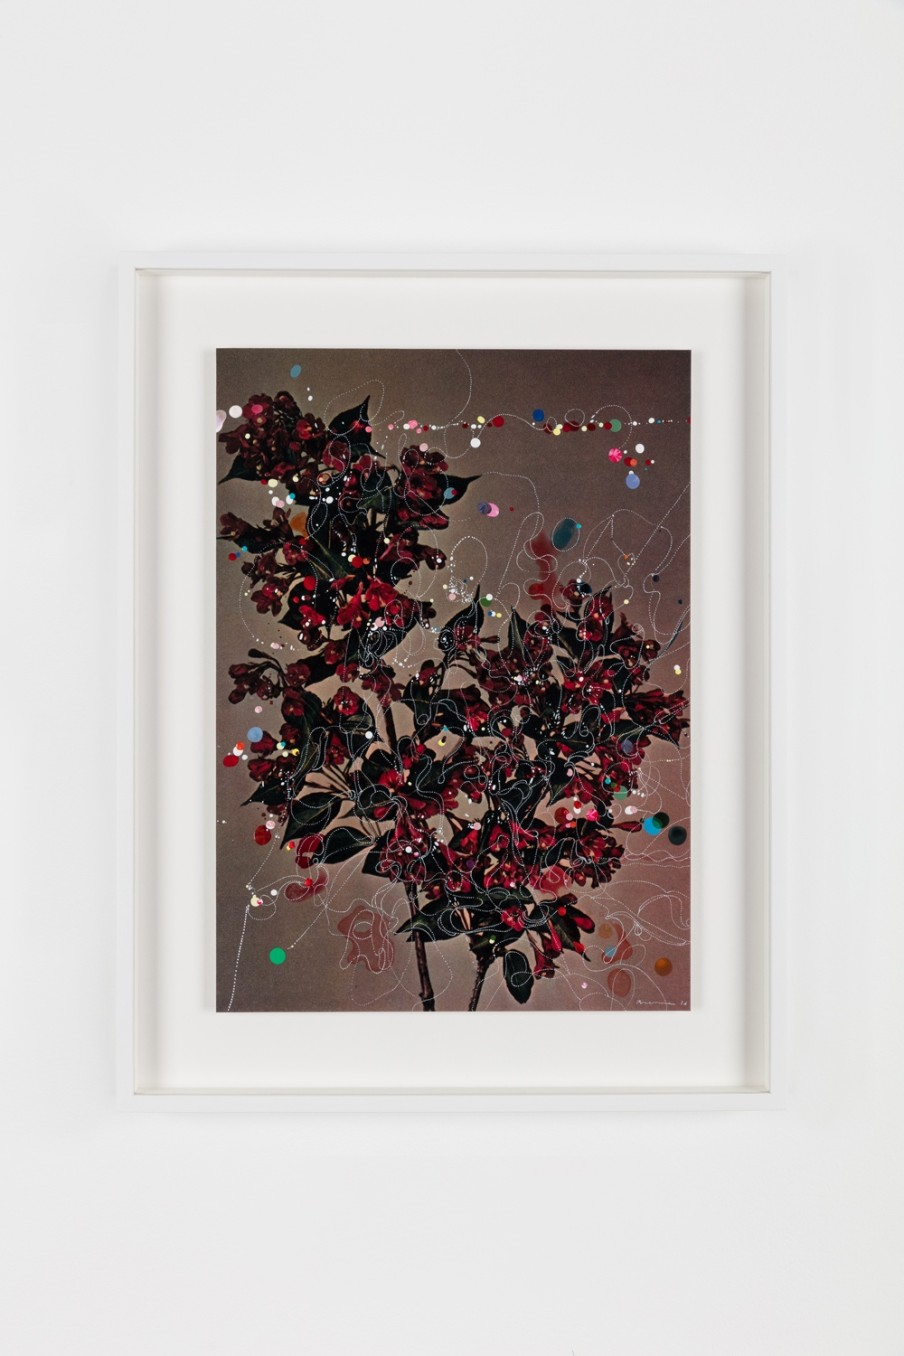 Sebastiaan Bremer, Diervilla Eva Rathke, 2016, Unique hand-painted chromogenic print with hand additions in acrylic, photo retouch dye, and pigment pen, 39 x 28 cm, 15 3/8 x 11 1/8 in, Framed: 49.8 x 38.9 x 3.8 cm, 19 5/8 x 15 1/4 x 1 1/2 in